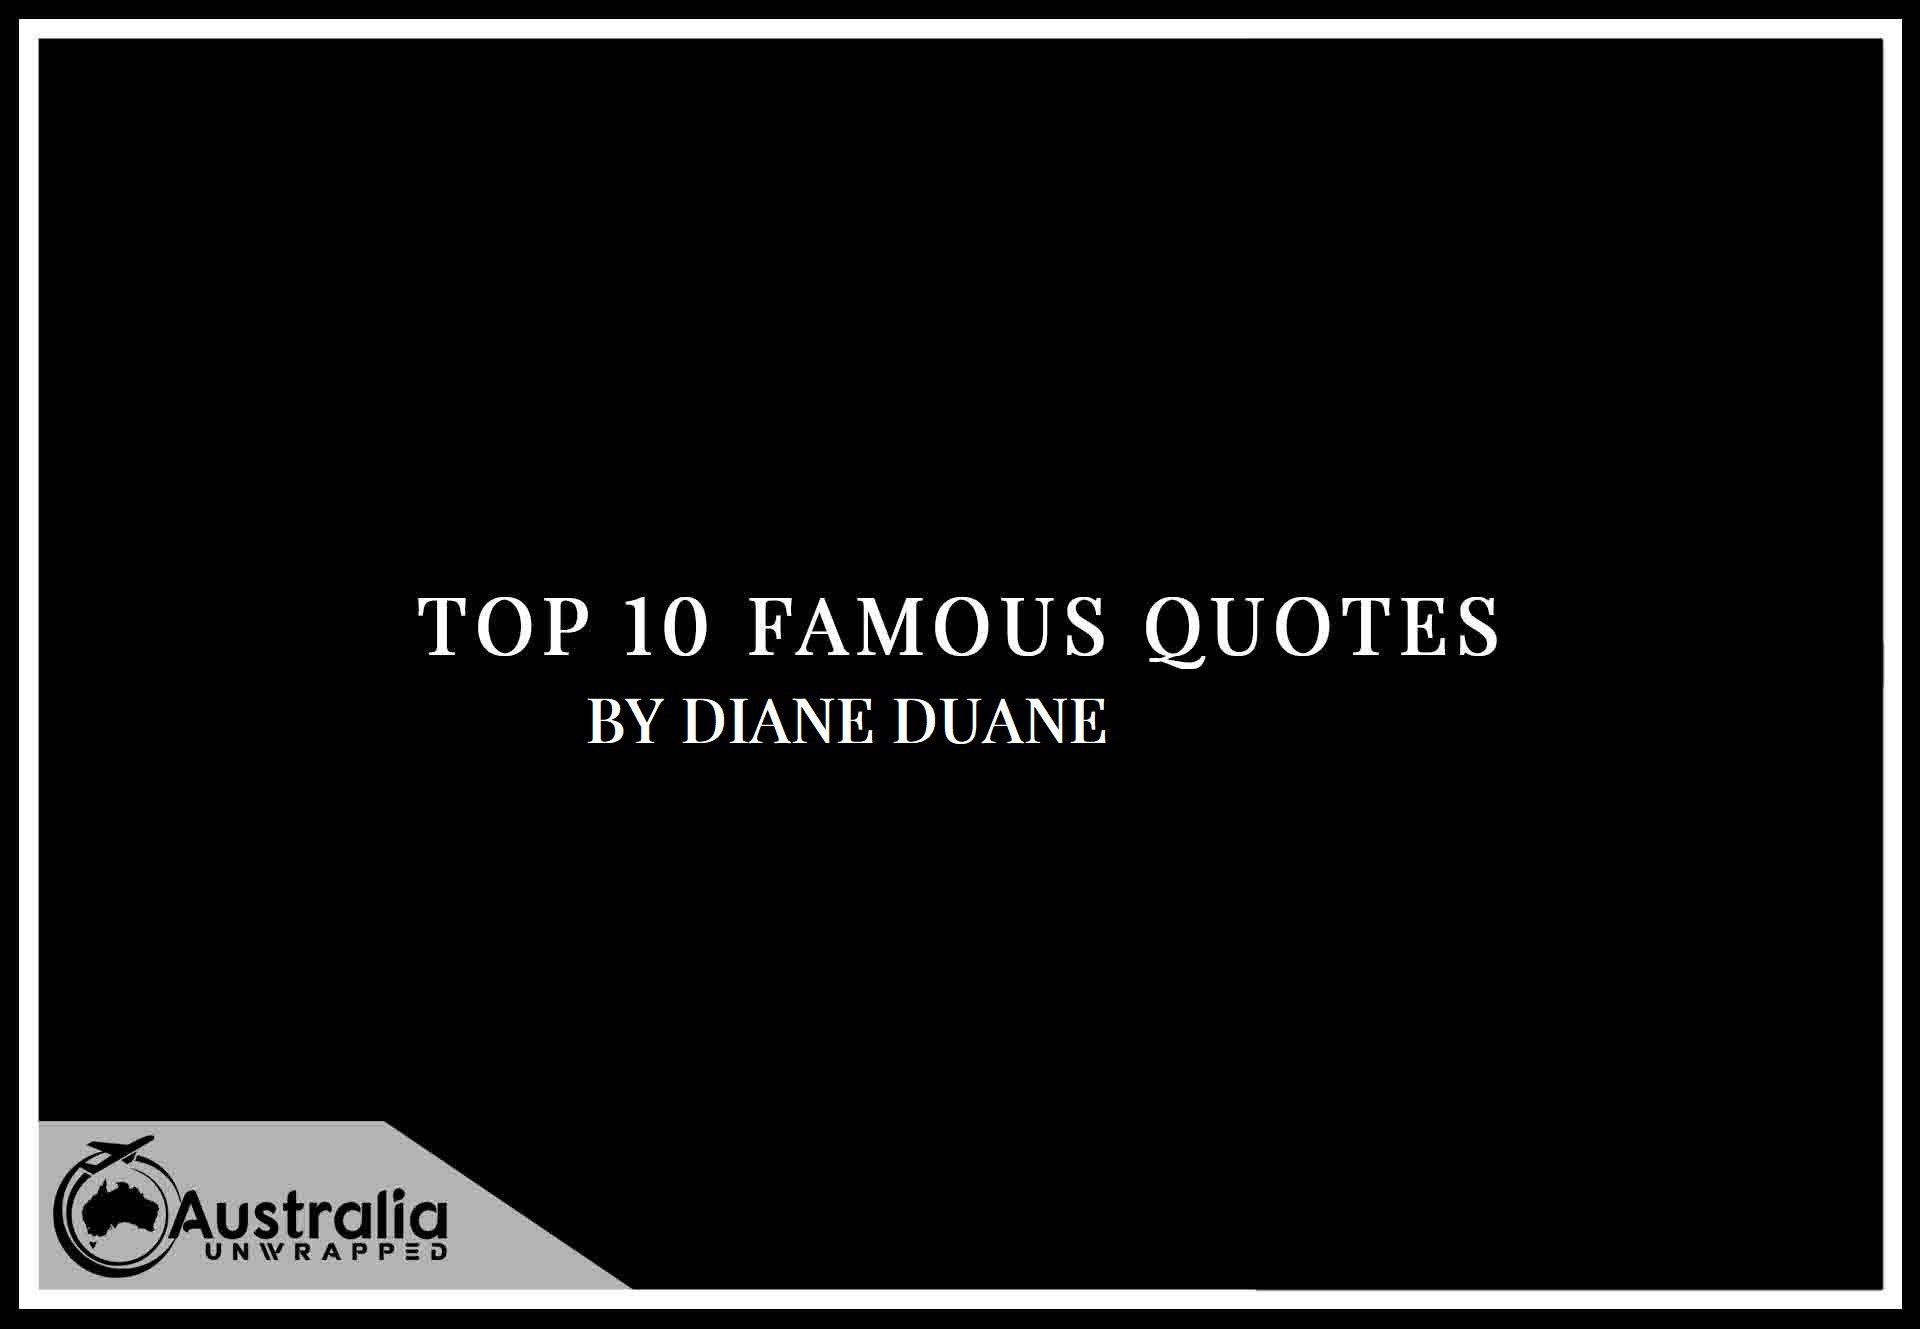 Top 10 Famous Quotes by Author Diane Duane